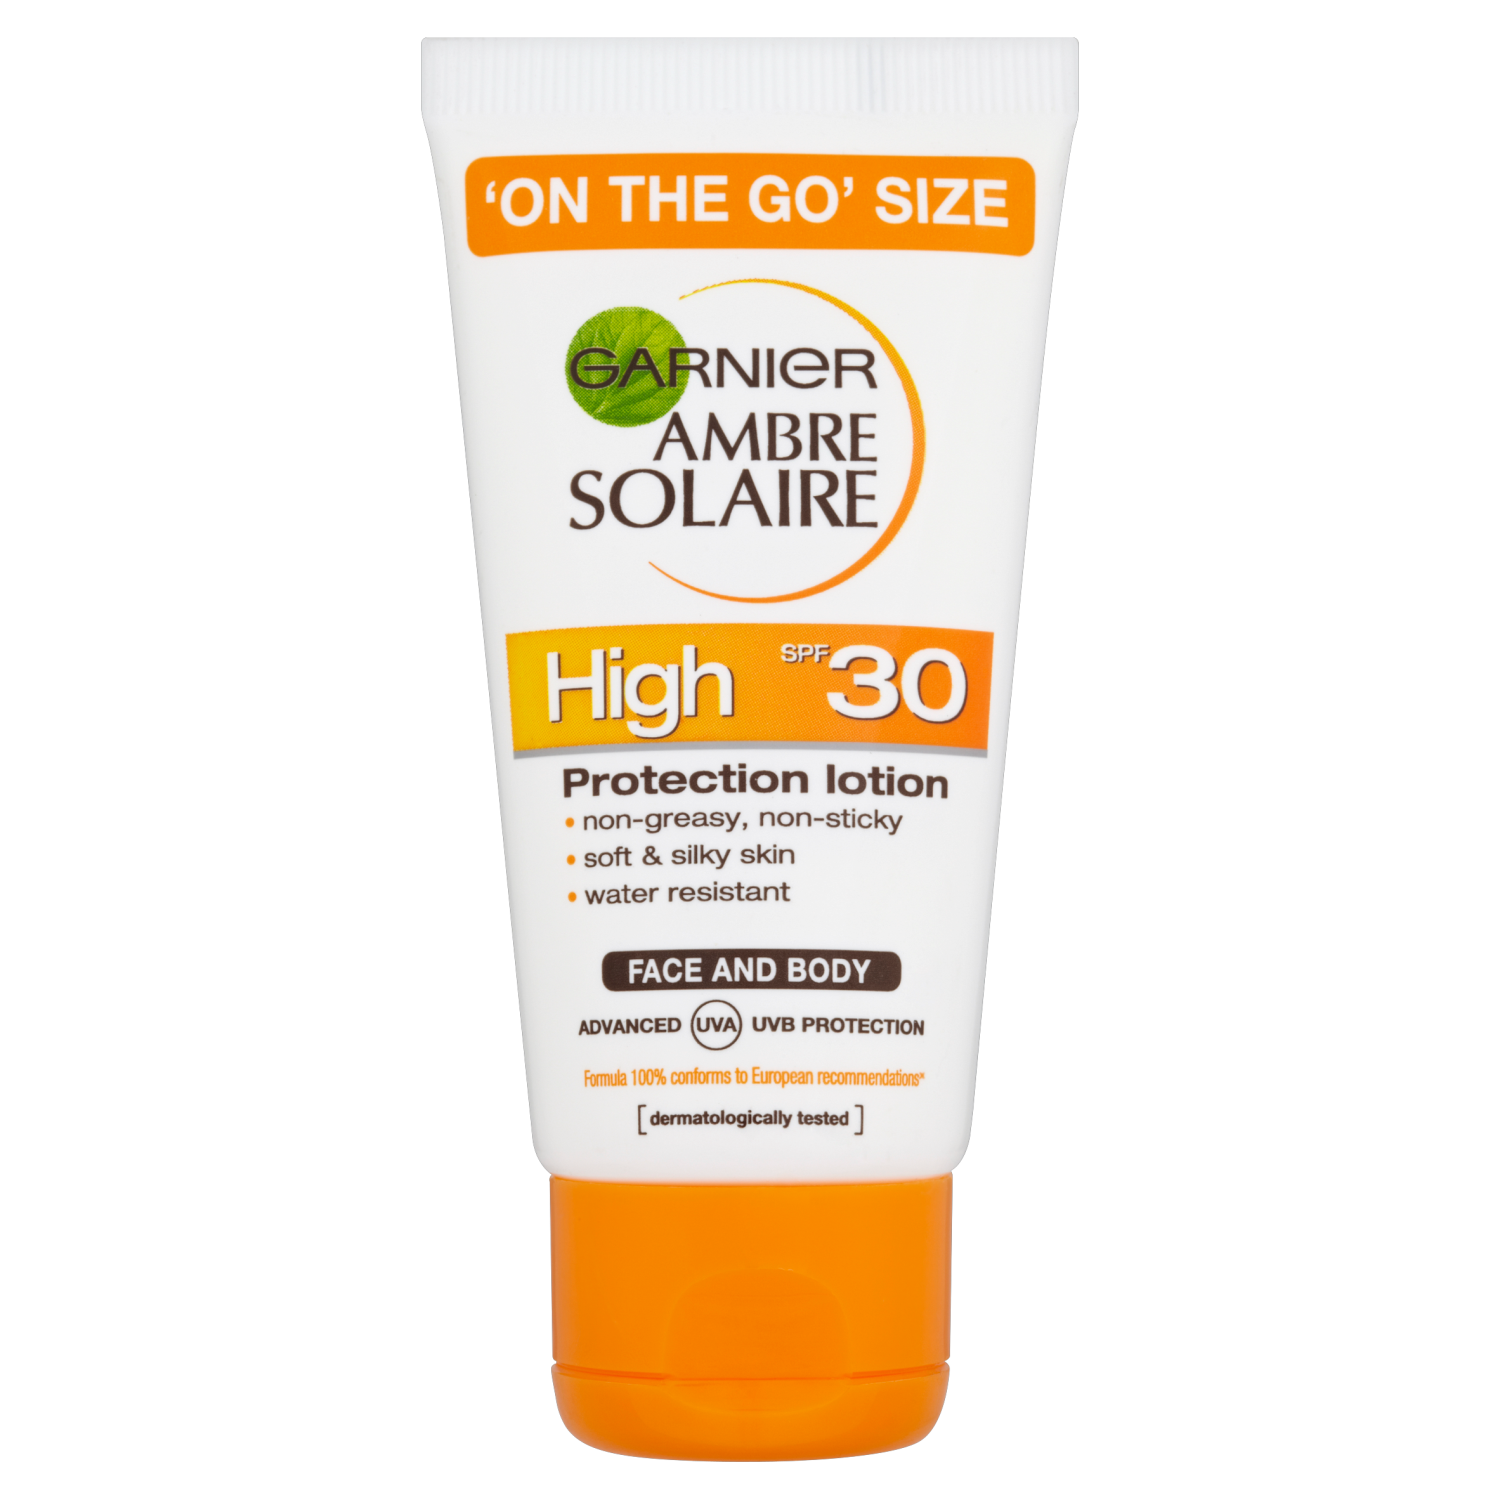 Ambre Solaire Original Protection Lotion Medium SPF30 Travel Size